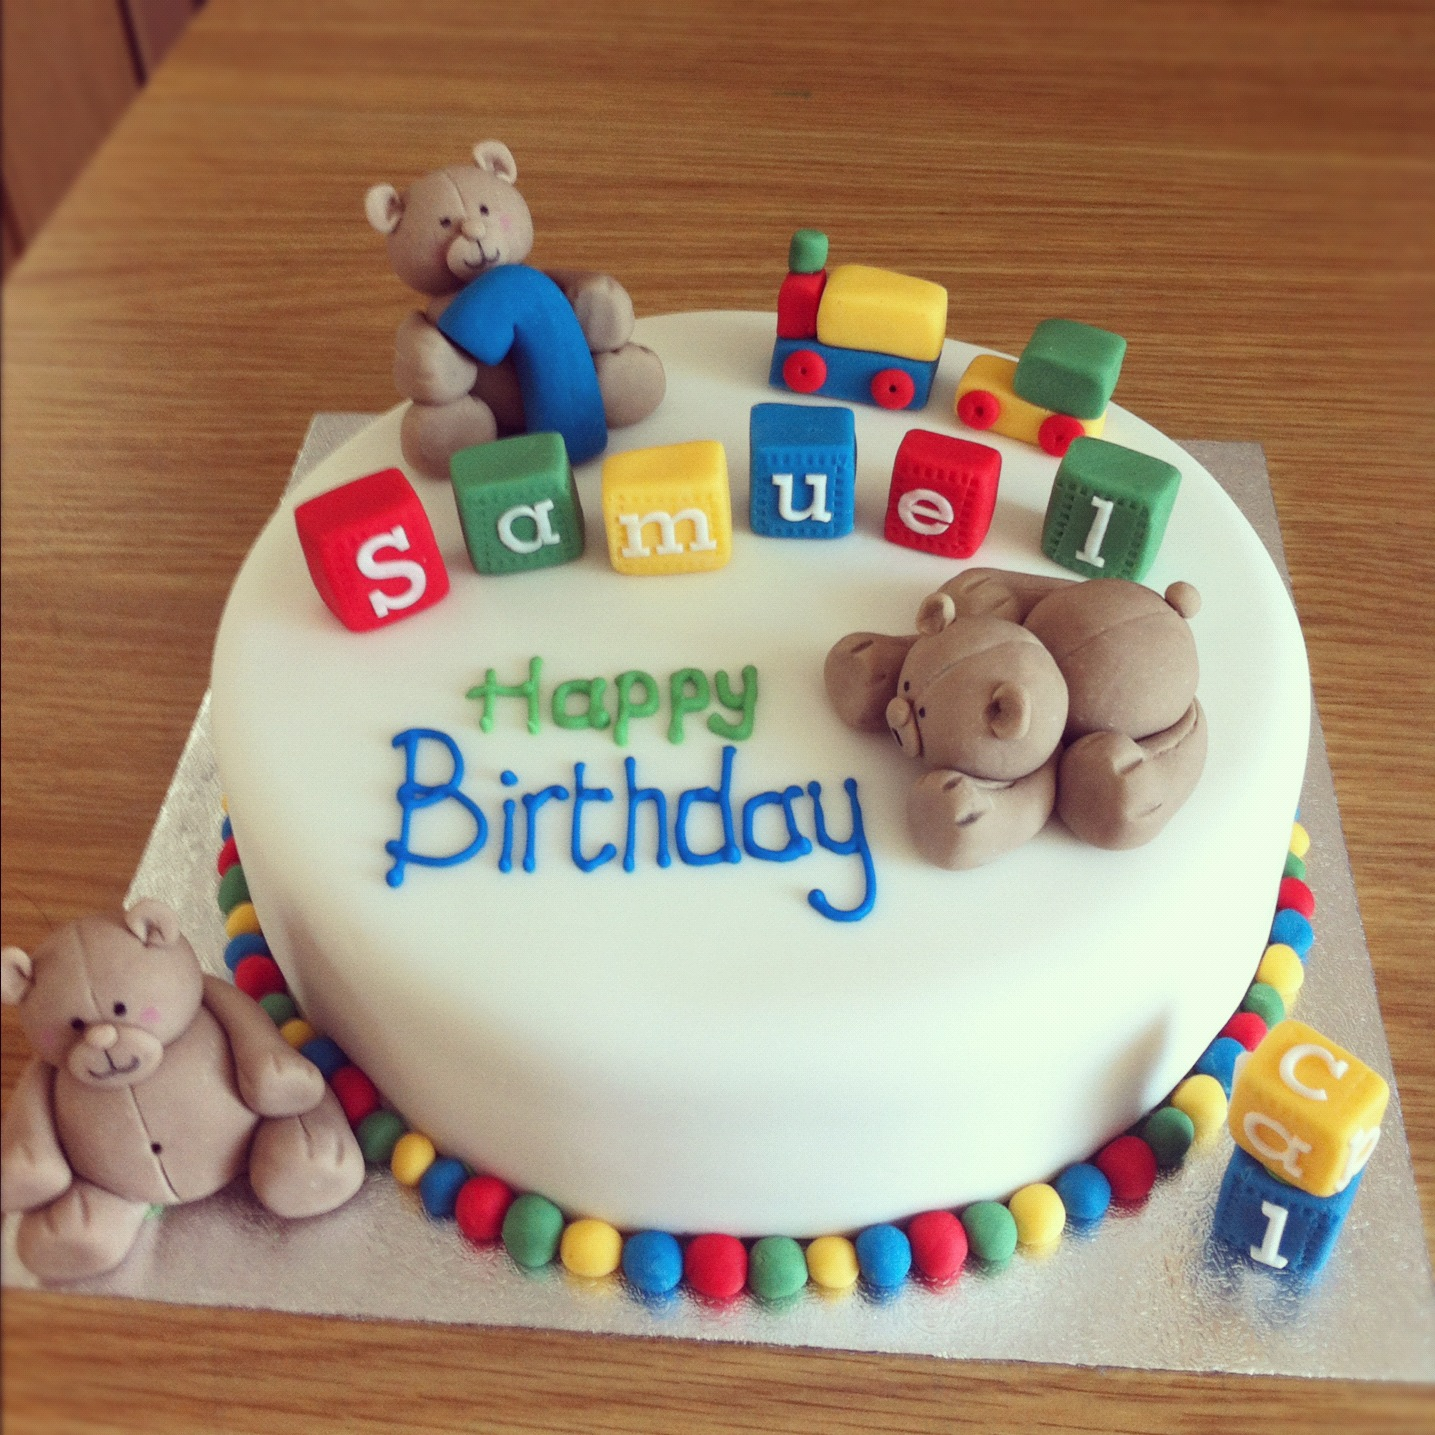 Cake Ideas For Baby Boy 1st Birthday : Caked in Icing: First Birthday Cake